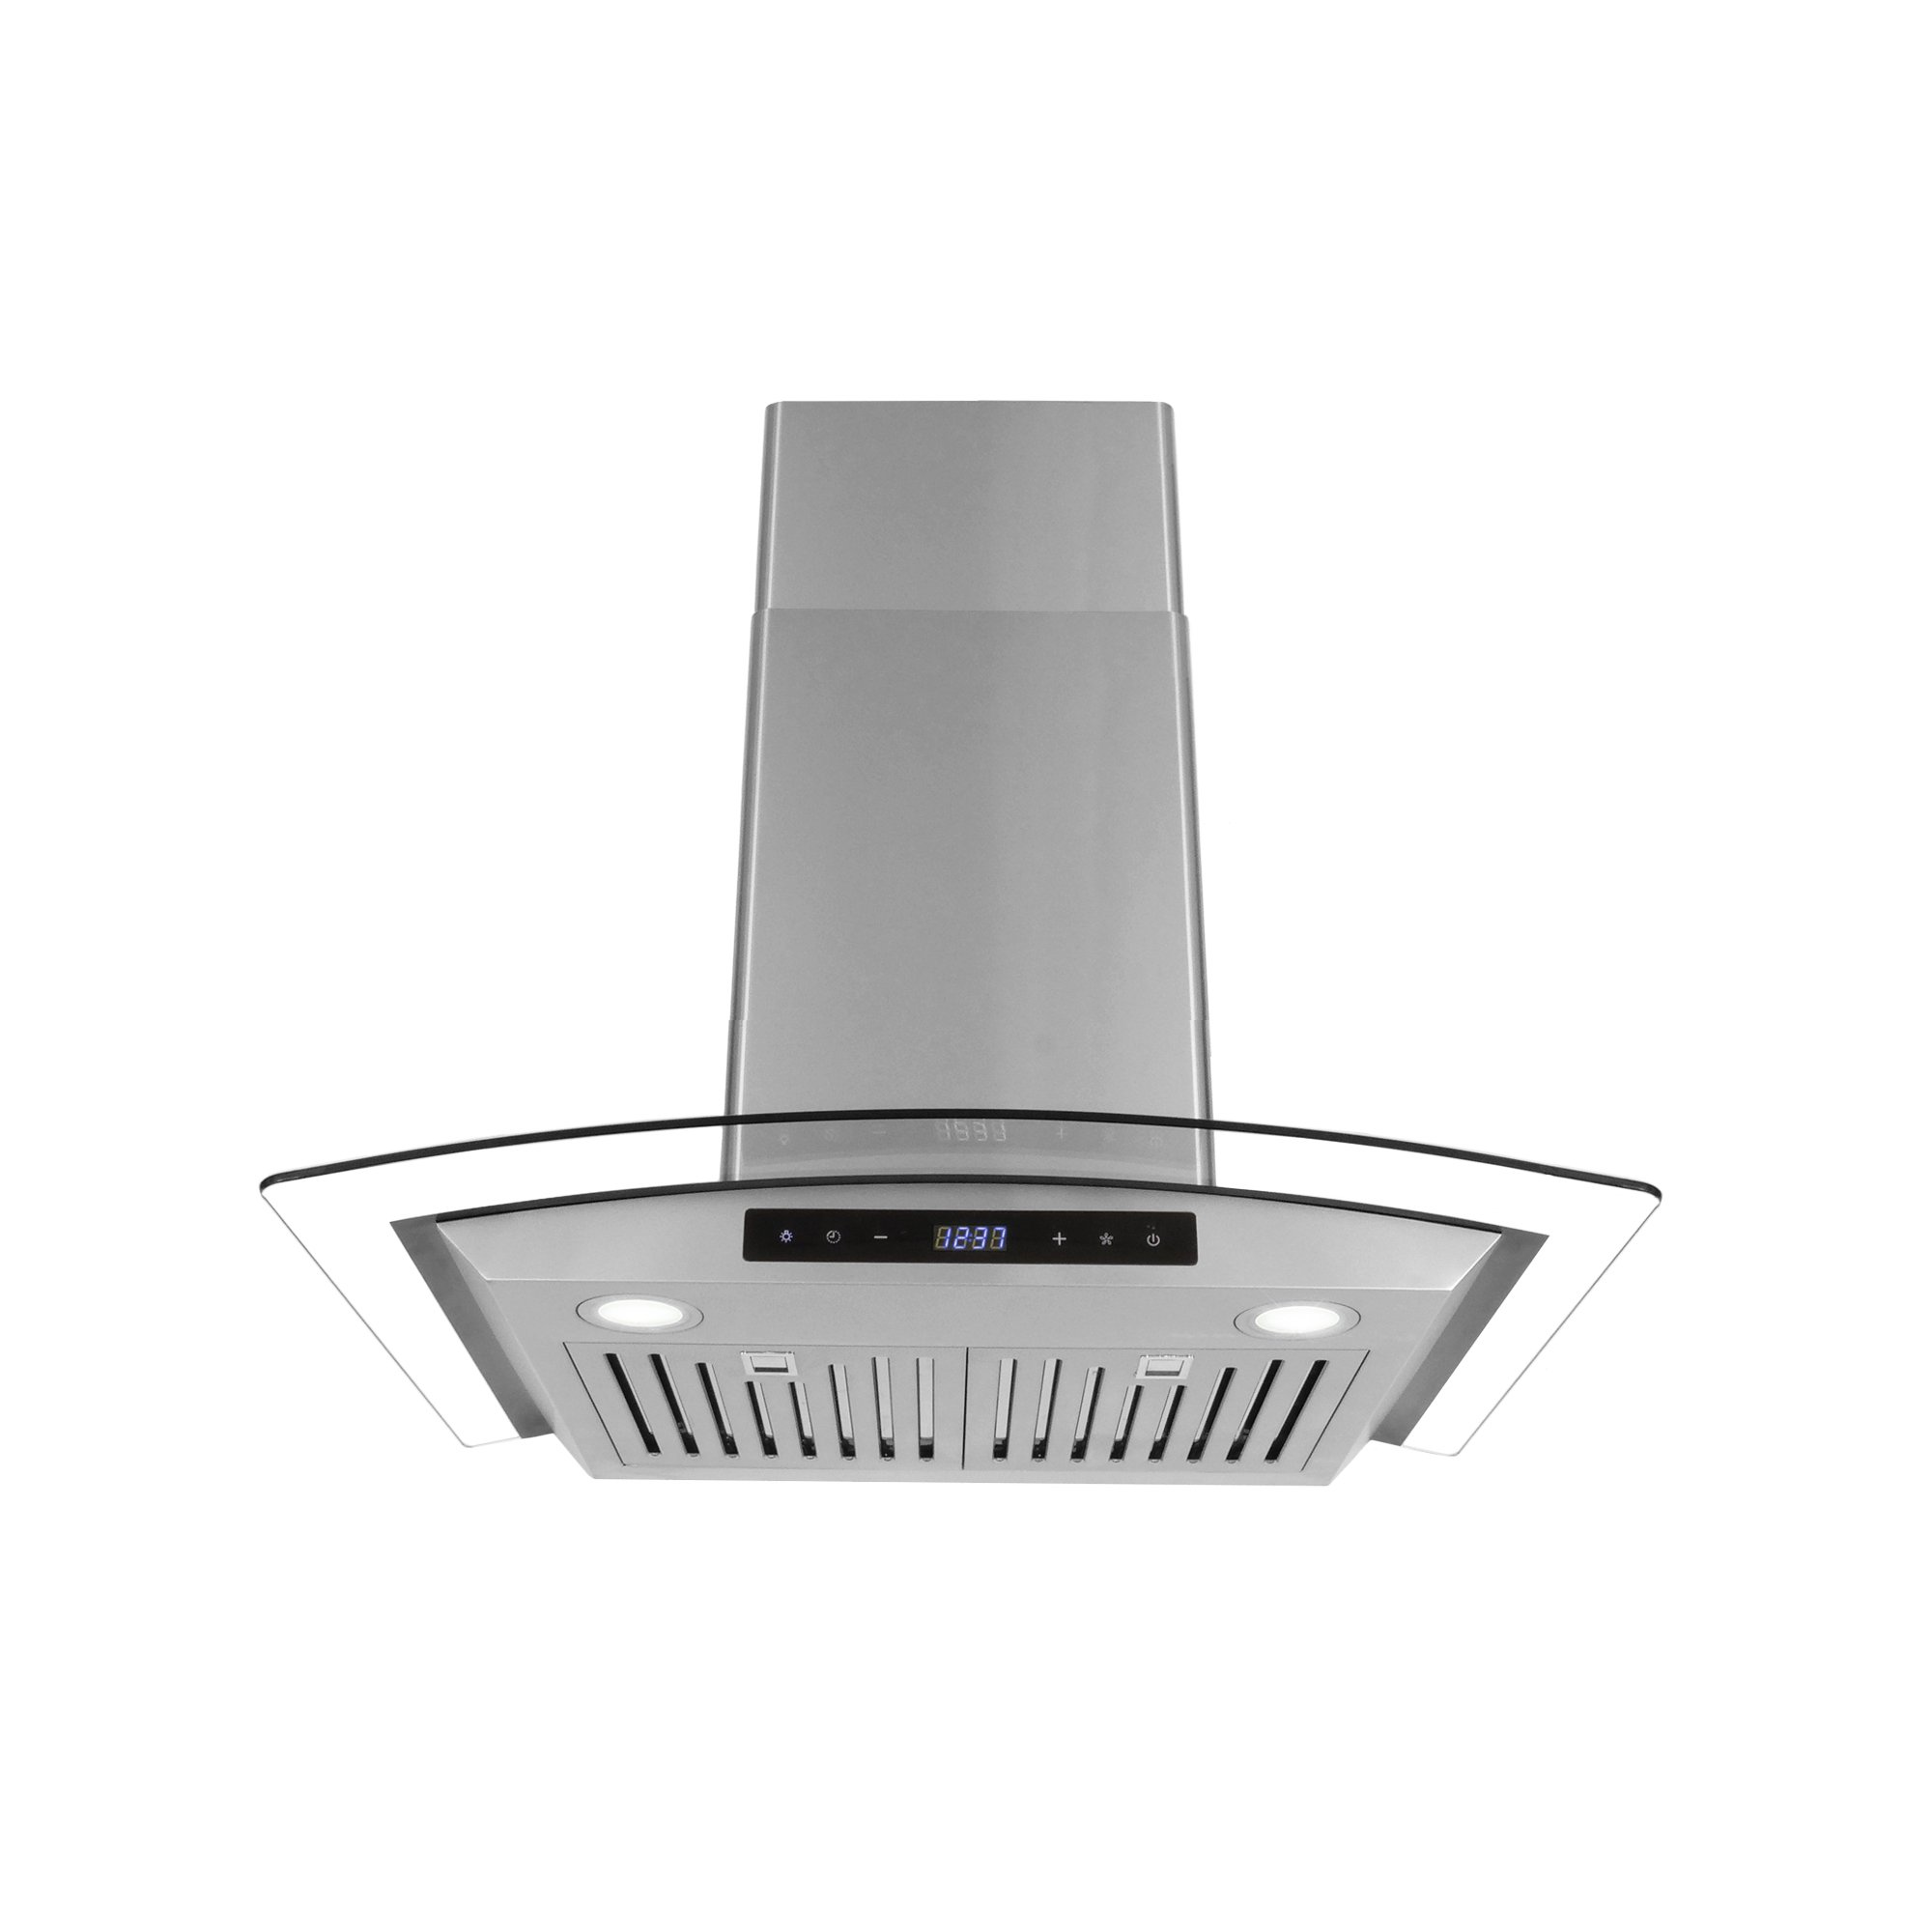 Cosmo COS-668WRCS75 Pro-Style Wall Mount Range Hood 30 inch 760 CFM Tempered Glass Ducted Exhaust Vent, 3 Speed Fan Stainless Steel